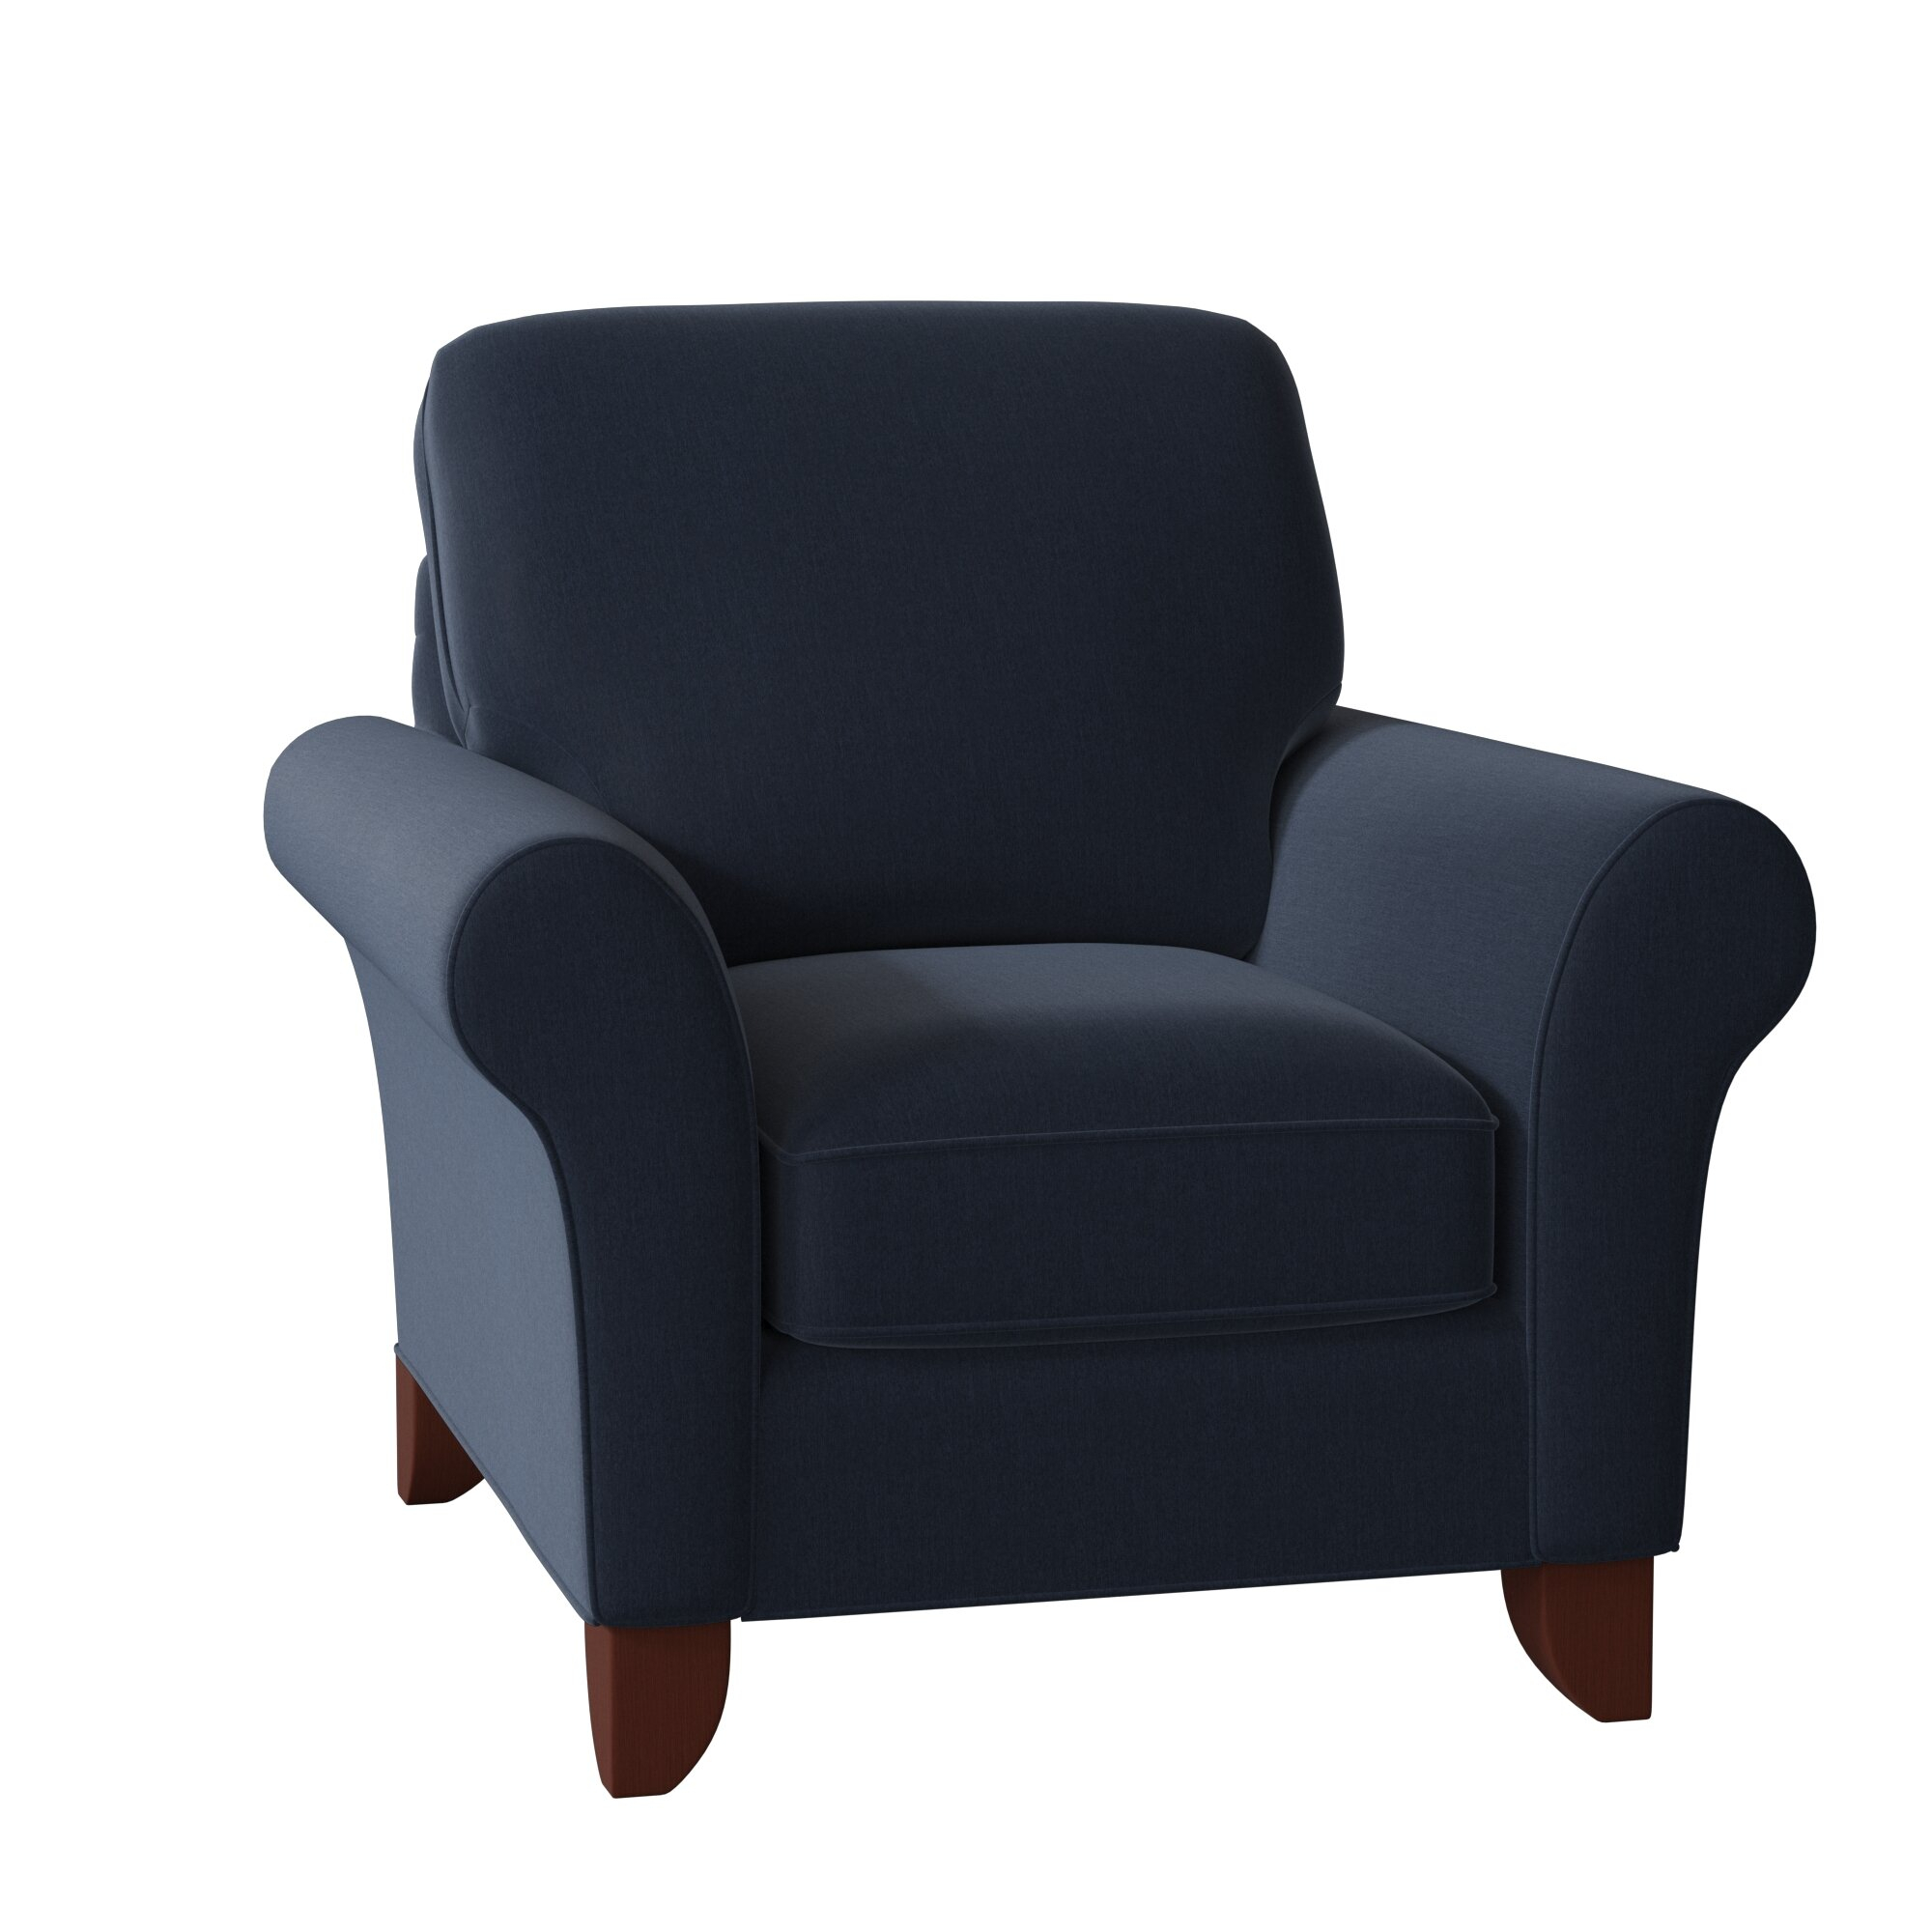 Almada Armchair Regarding Almada Armchairs (View 3 of 15)